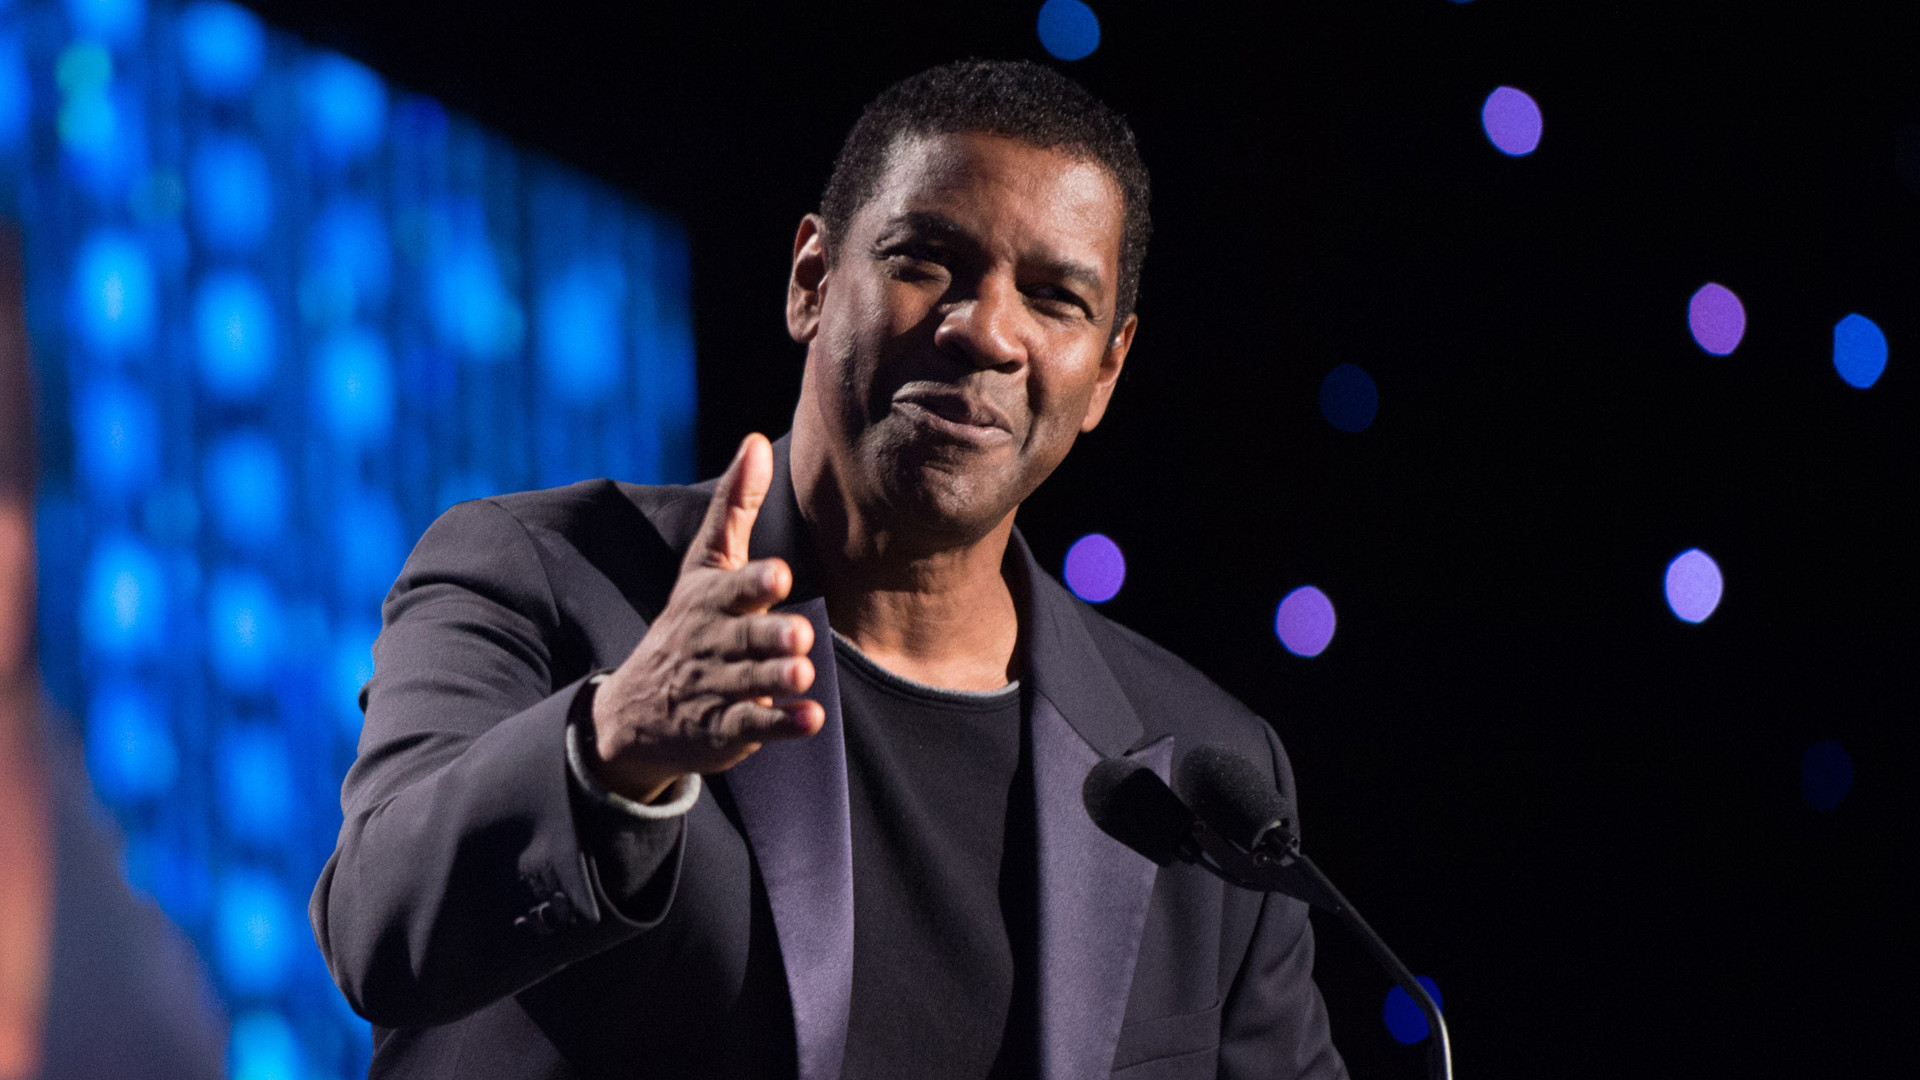 denzel washington News of actor denzel washington's death spread quickly earlier this week, causing concern among fans across the world however, the may 2018 report has now been confirmed as a complete hoax, the actor best known for his roles in training day or malcolm x is alive and well.